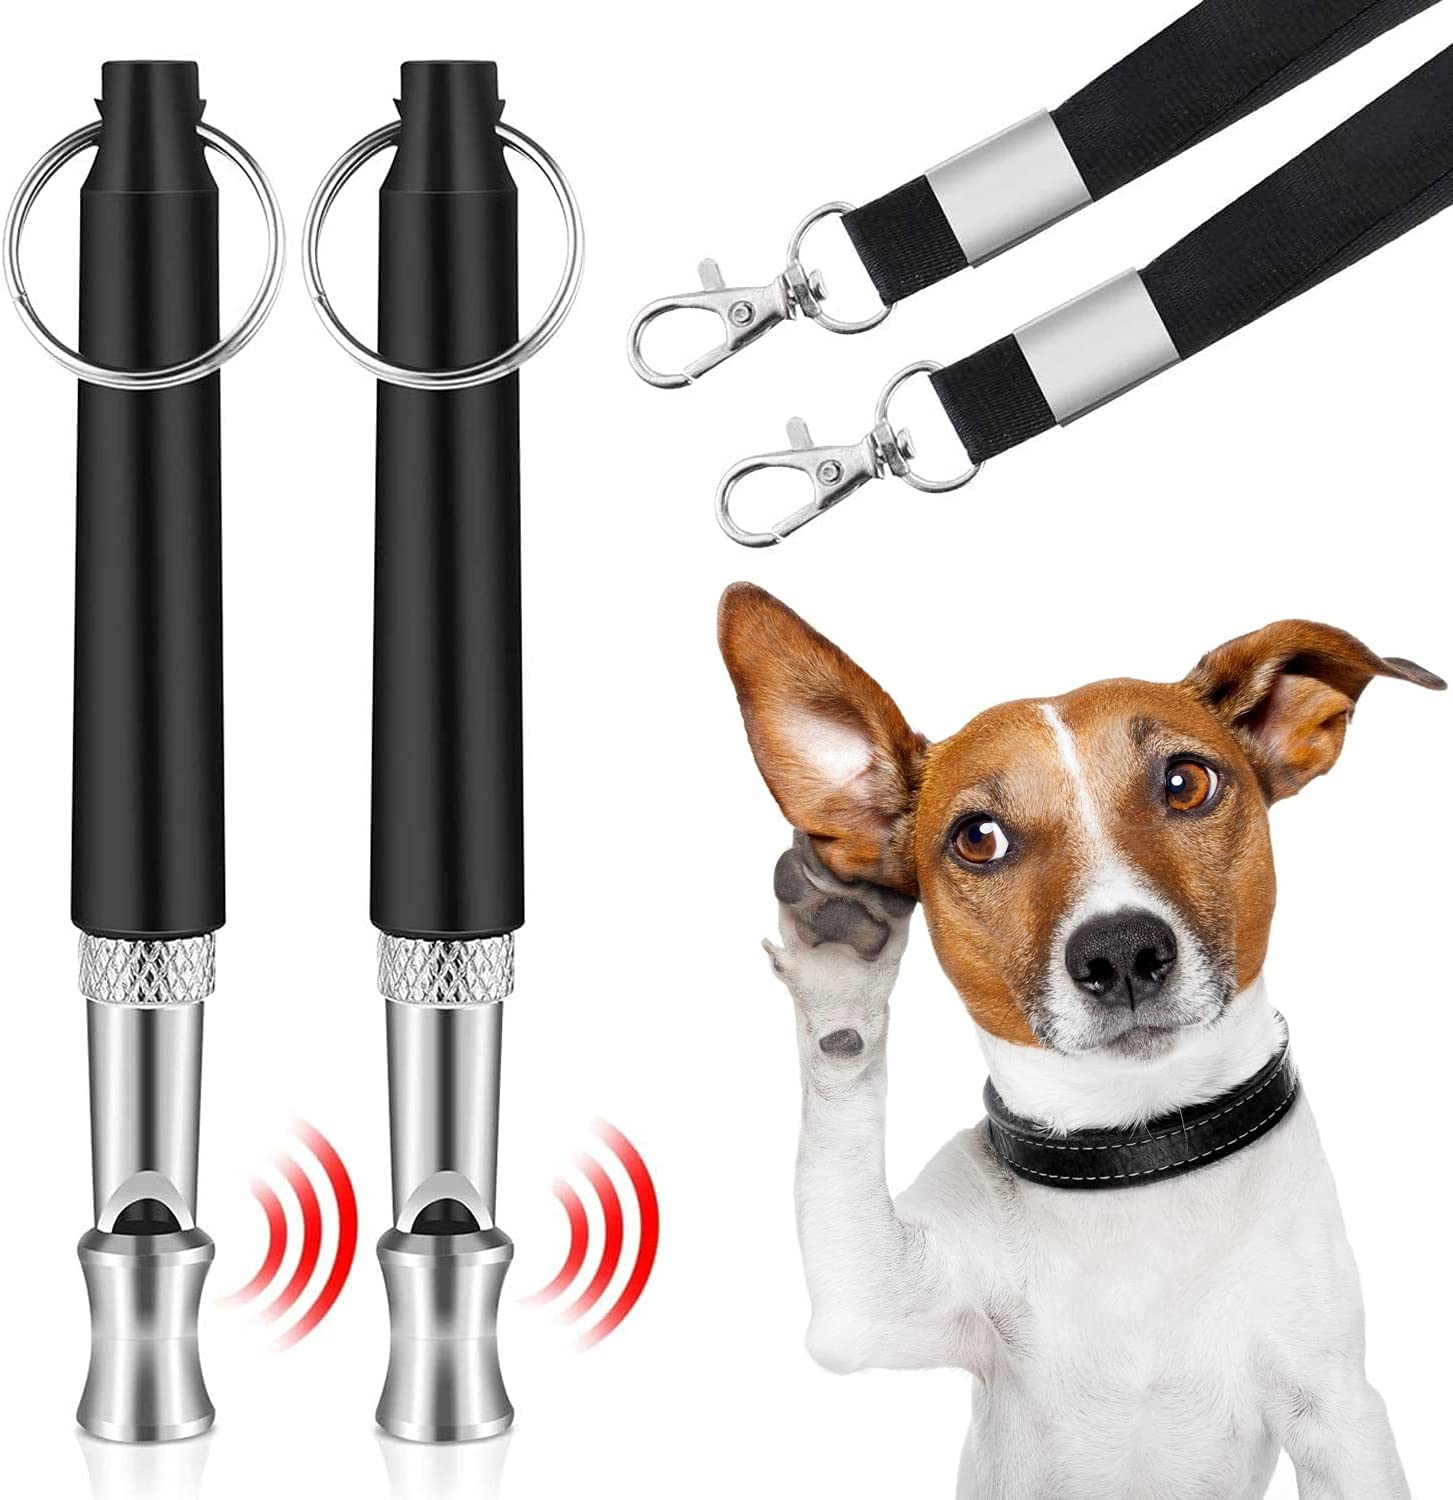 55% OFF Dog Whistle Branded goods Ultrasonic Whistles Barking Stop to